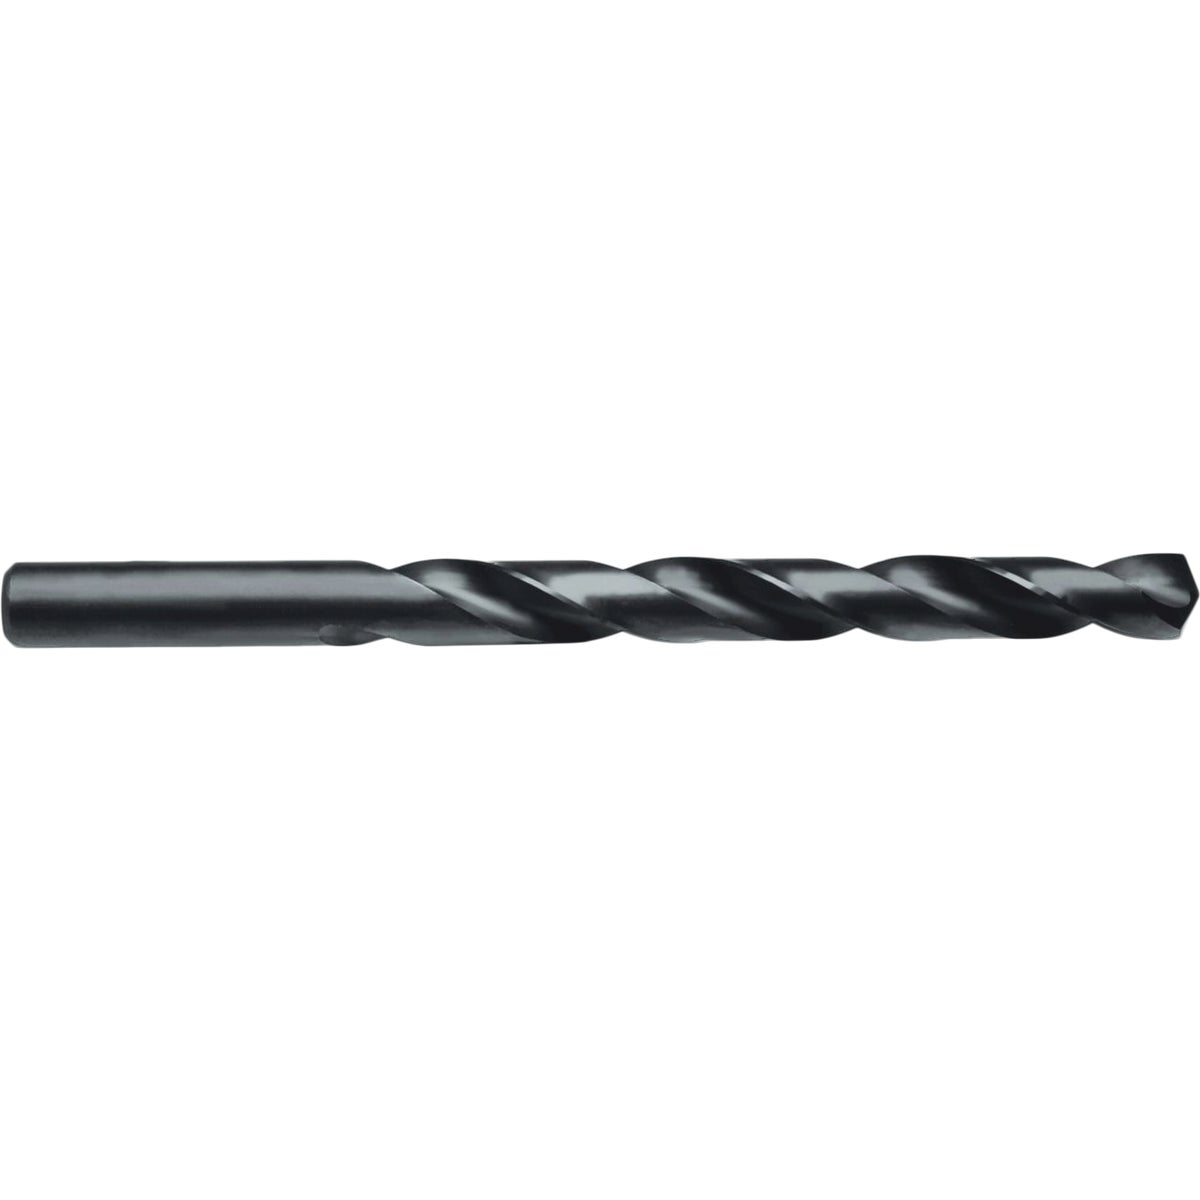 "15/32"" BLACK OXIDE BIT - DW1130 by DeWalt"